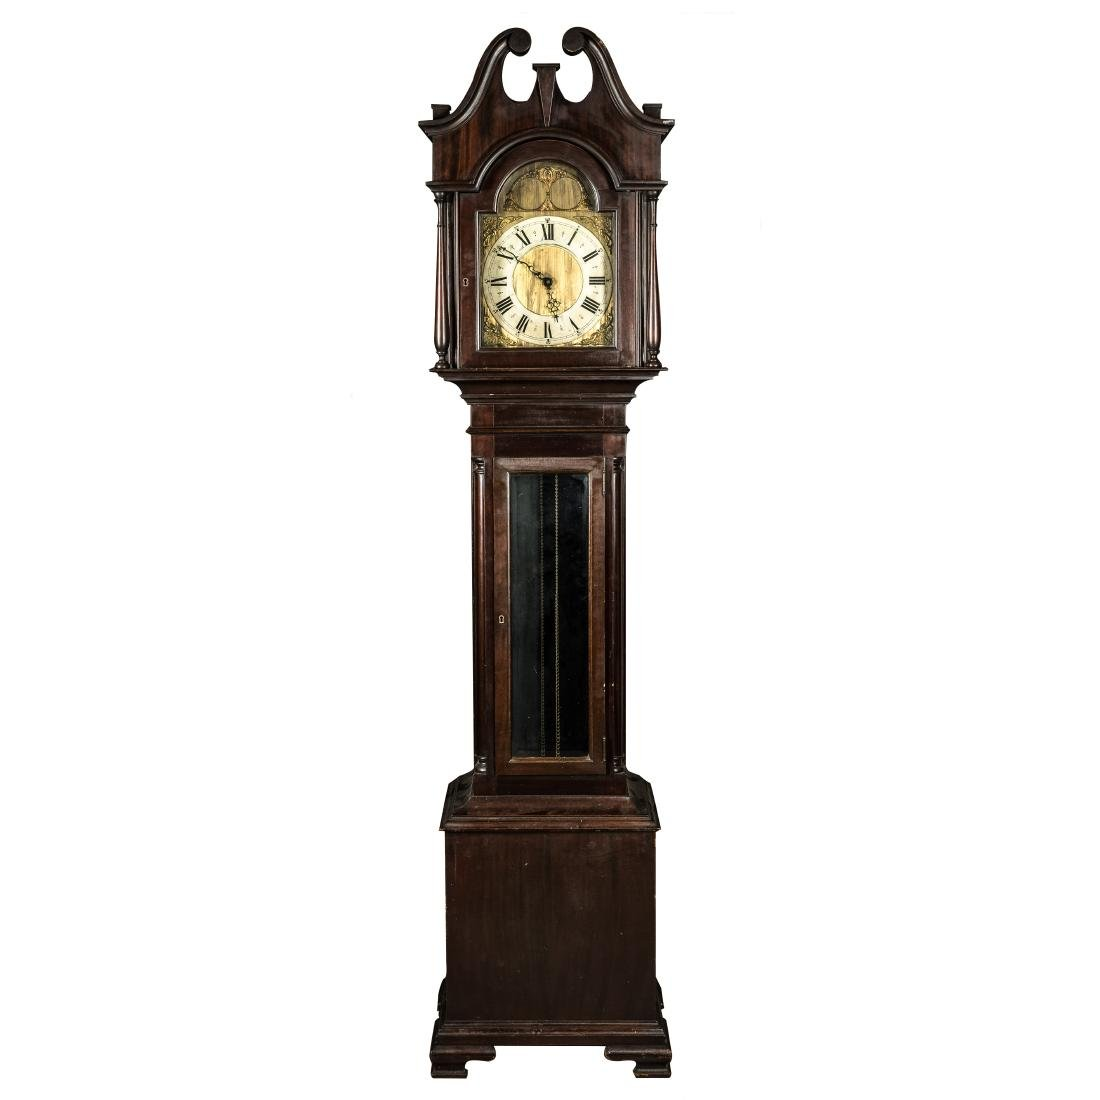 18th Antique Tall-Case Clock